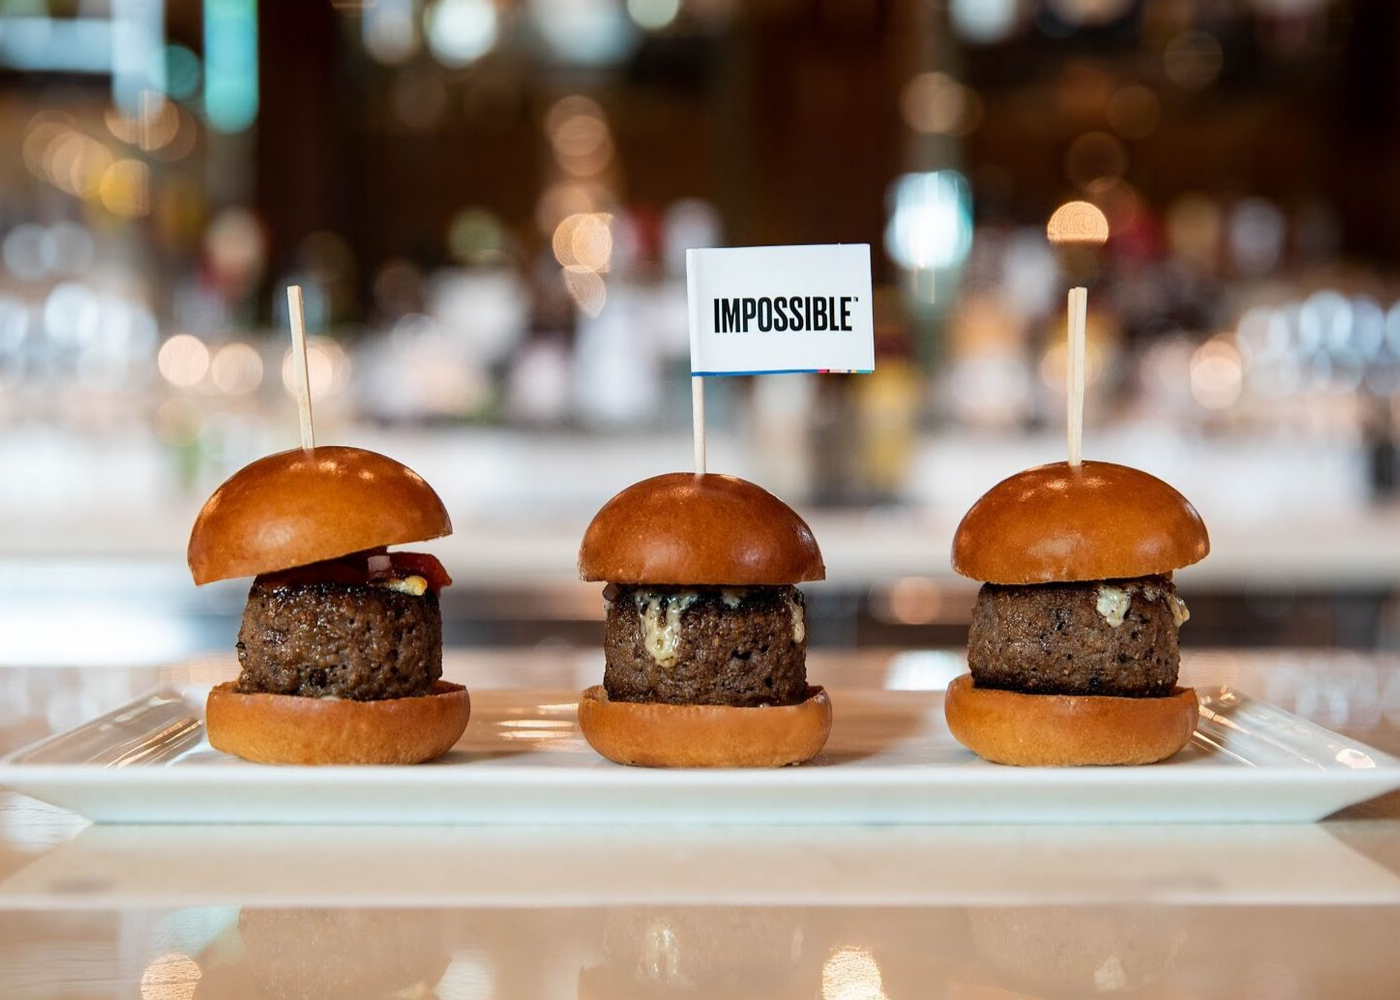 Impossible Foods in Singapore